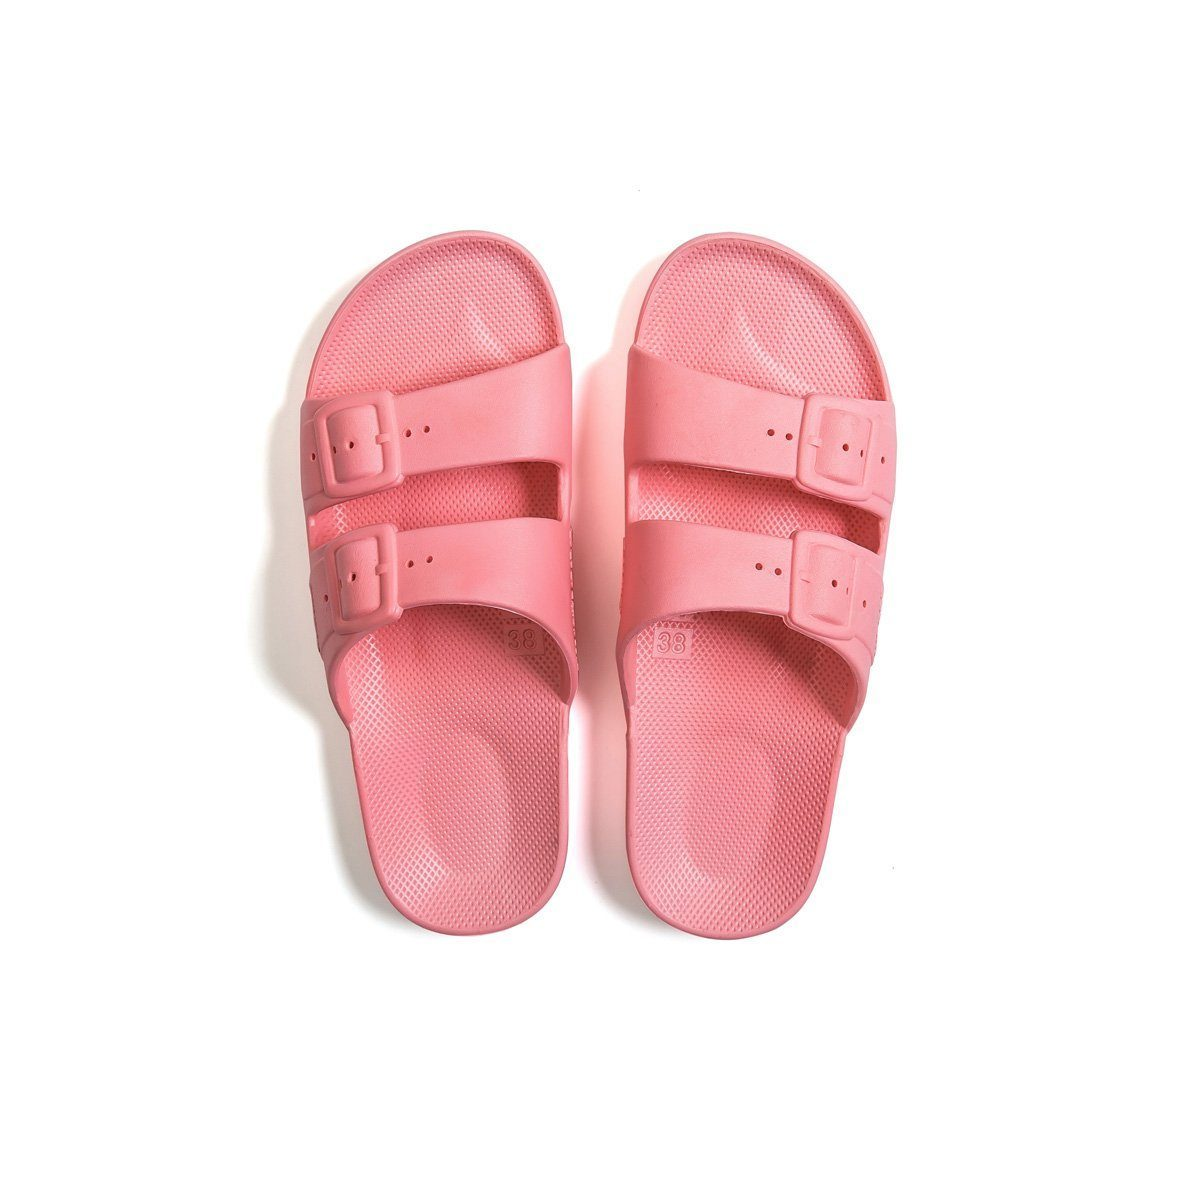 FREEDOM MOSES - FREEDOM SLIPPER IN PINK MARTINI (KIDS)